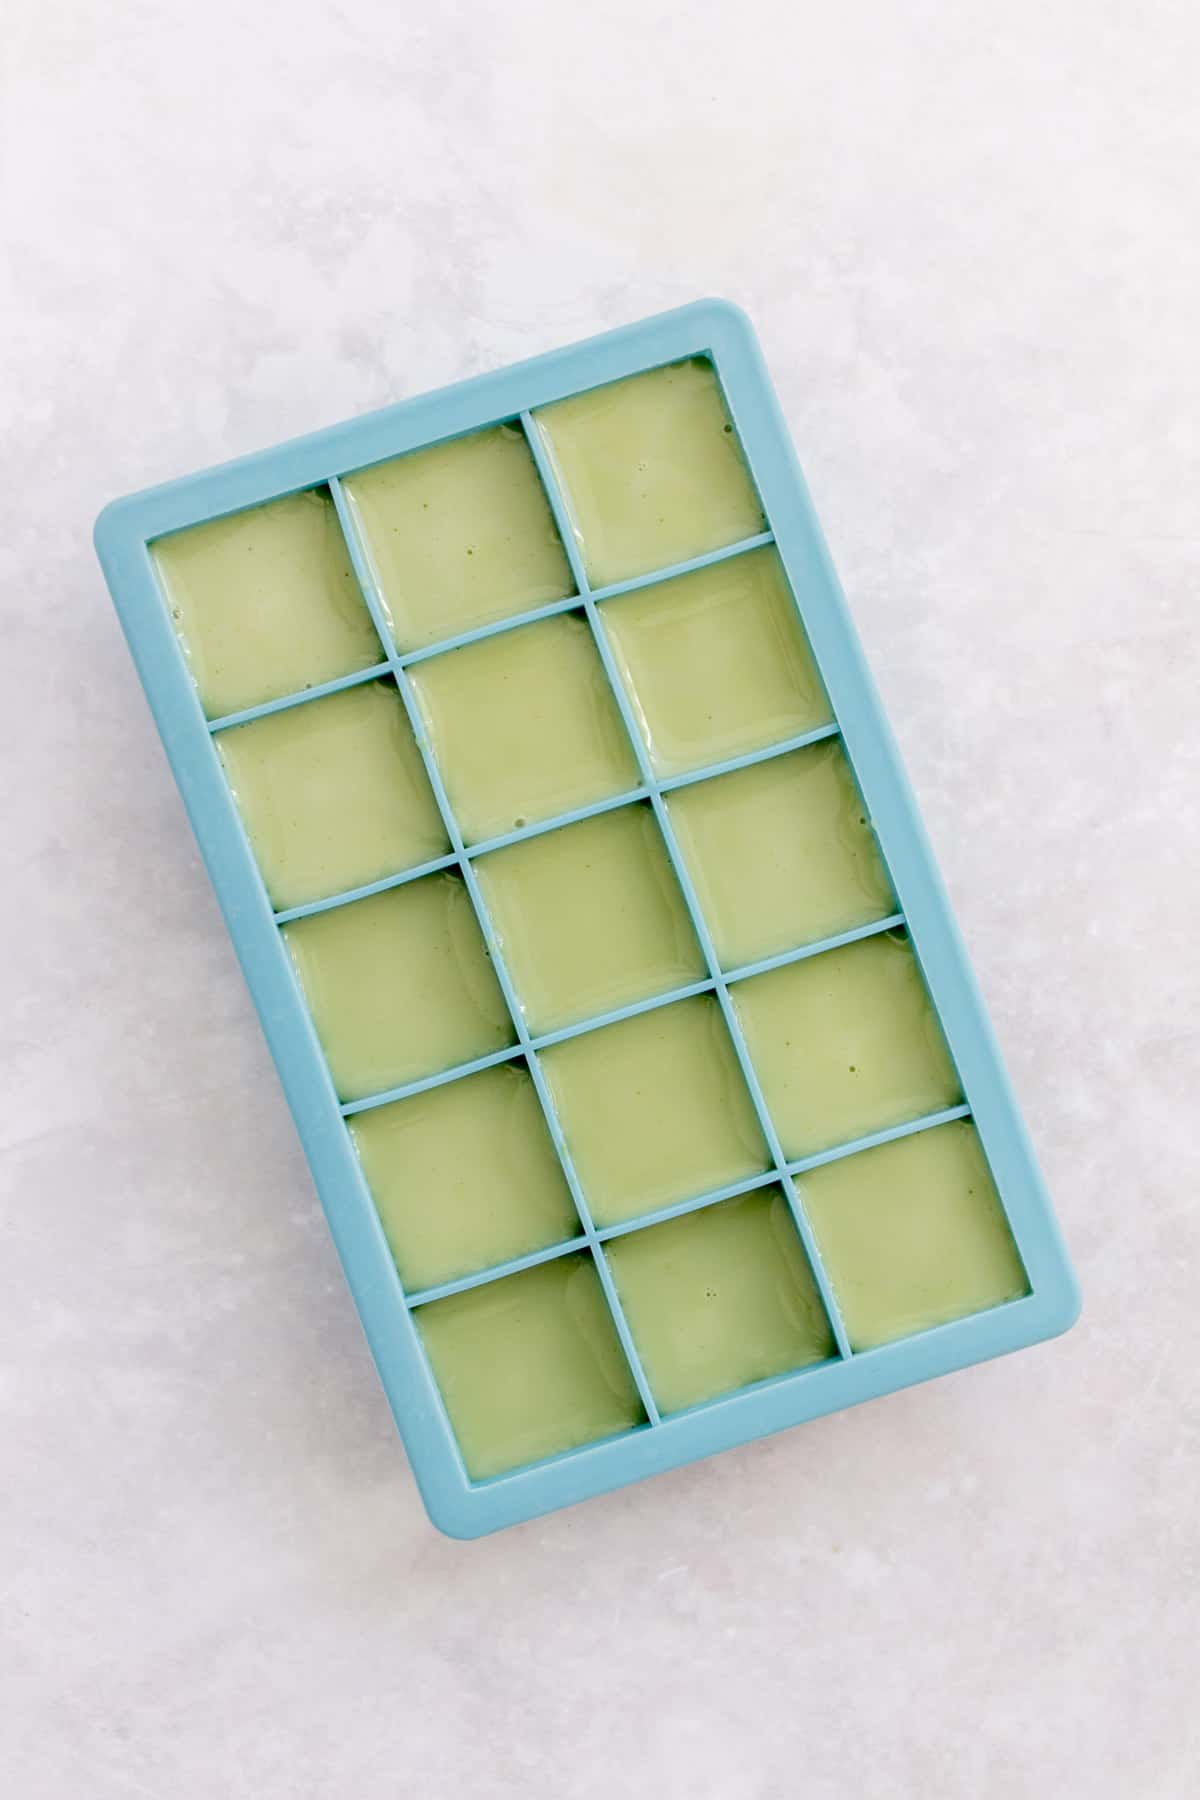 Matcha iced latte in an ice cube tray.